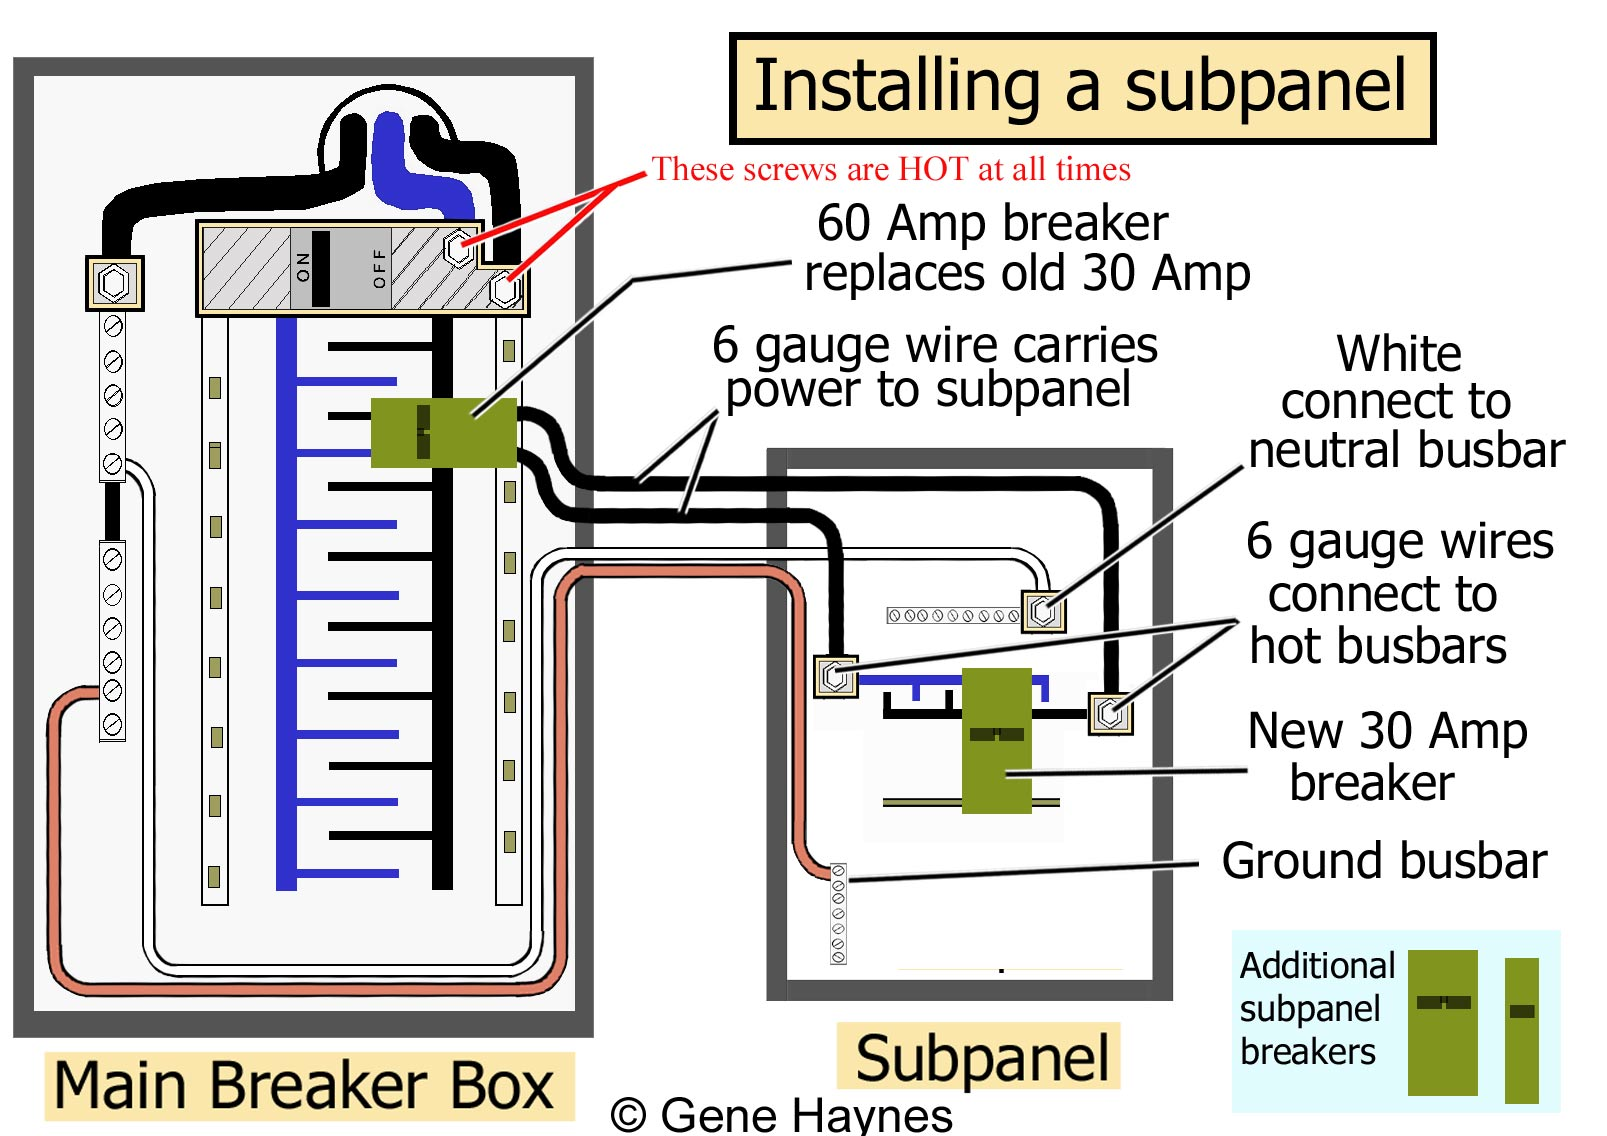 15 Amp Gfci Breaker Wiring Diagram For Light Switch Spa How To Install A Subpanel Main Lug Rh Waterheatertimer Org 220v